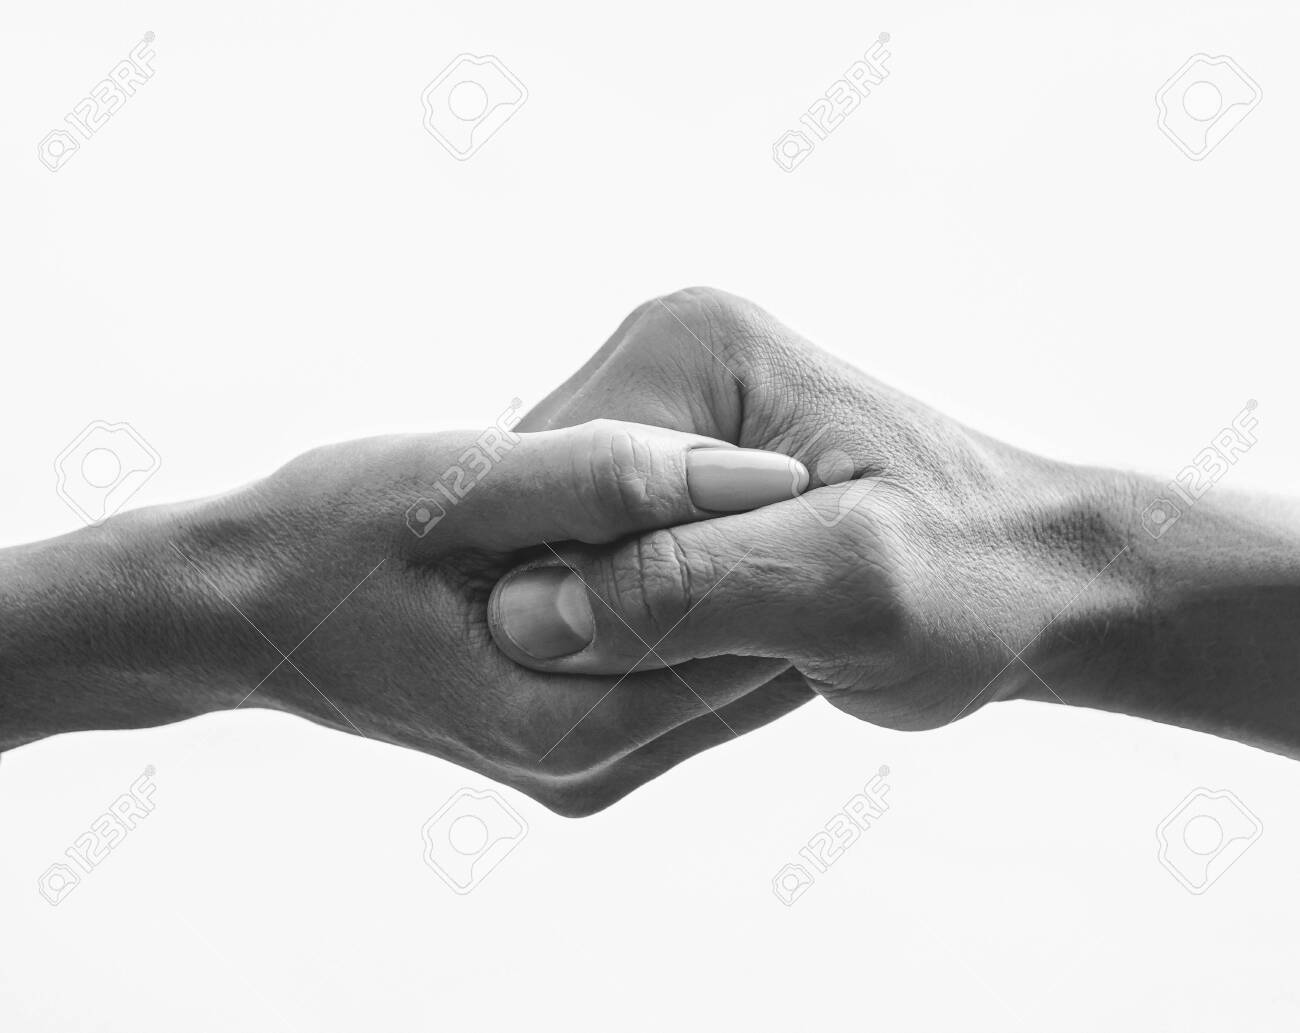 Female hand intertwined with a male hand - 151163677